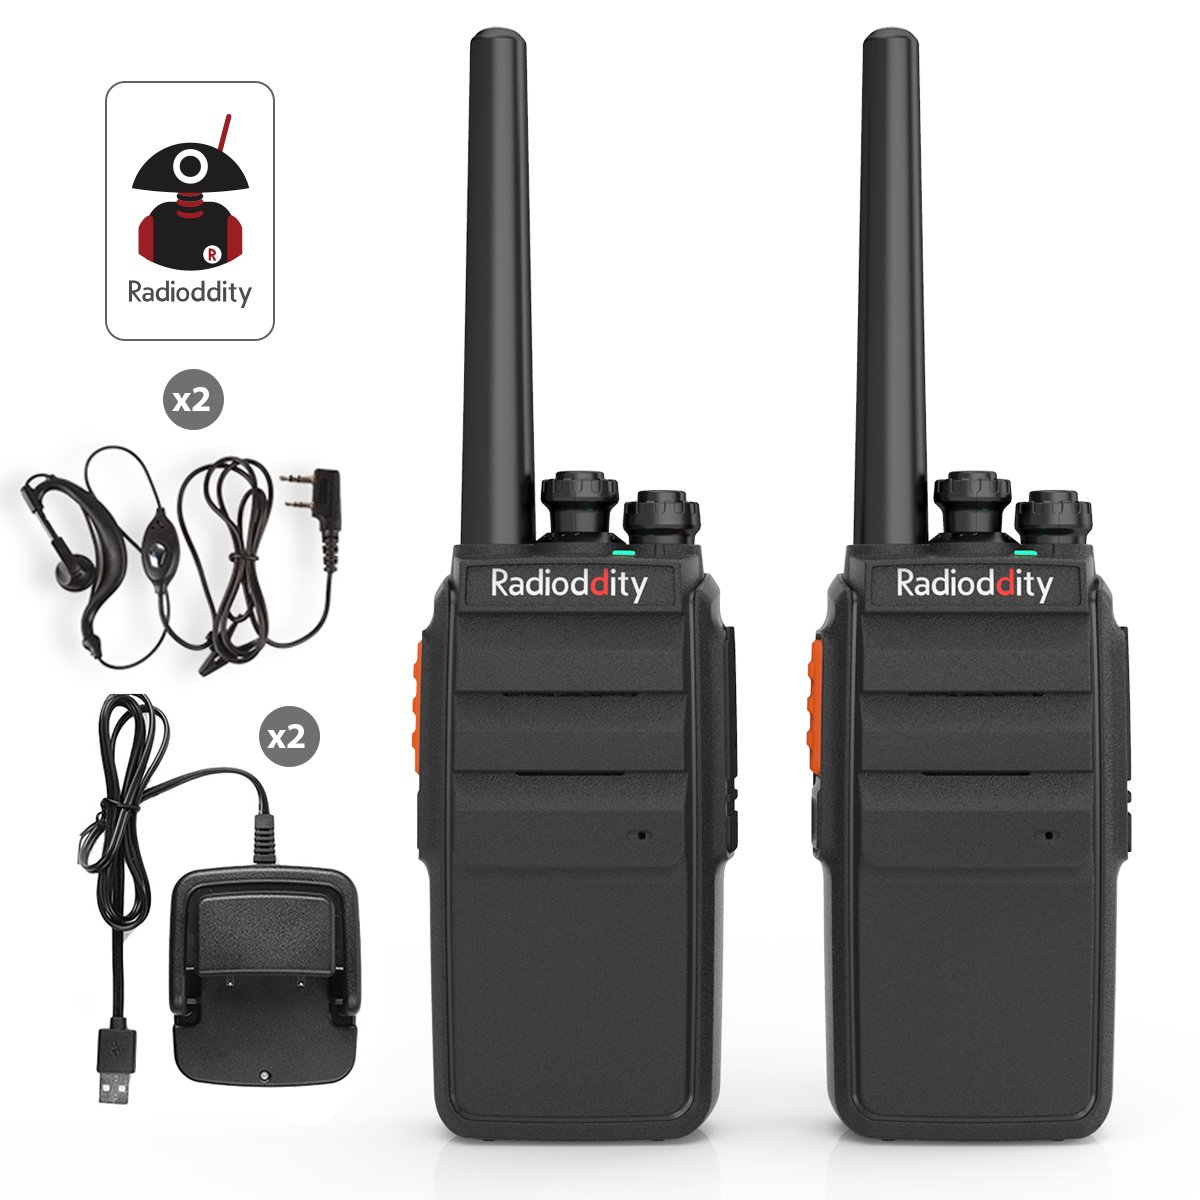 Radioddity R2 Advanced UHF Two Way Radio 400-470MHz 16 CH Scrambler VOX Rechargeable Long Range Survival Walkie Talkie with USB Desktop Charger + Earpiece (2 Pack)